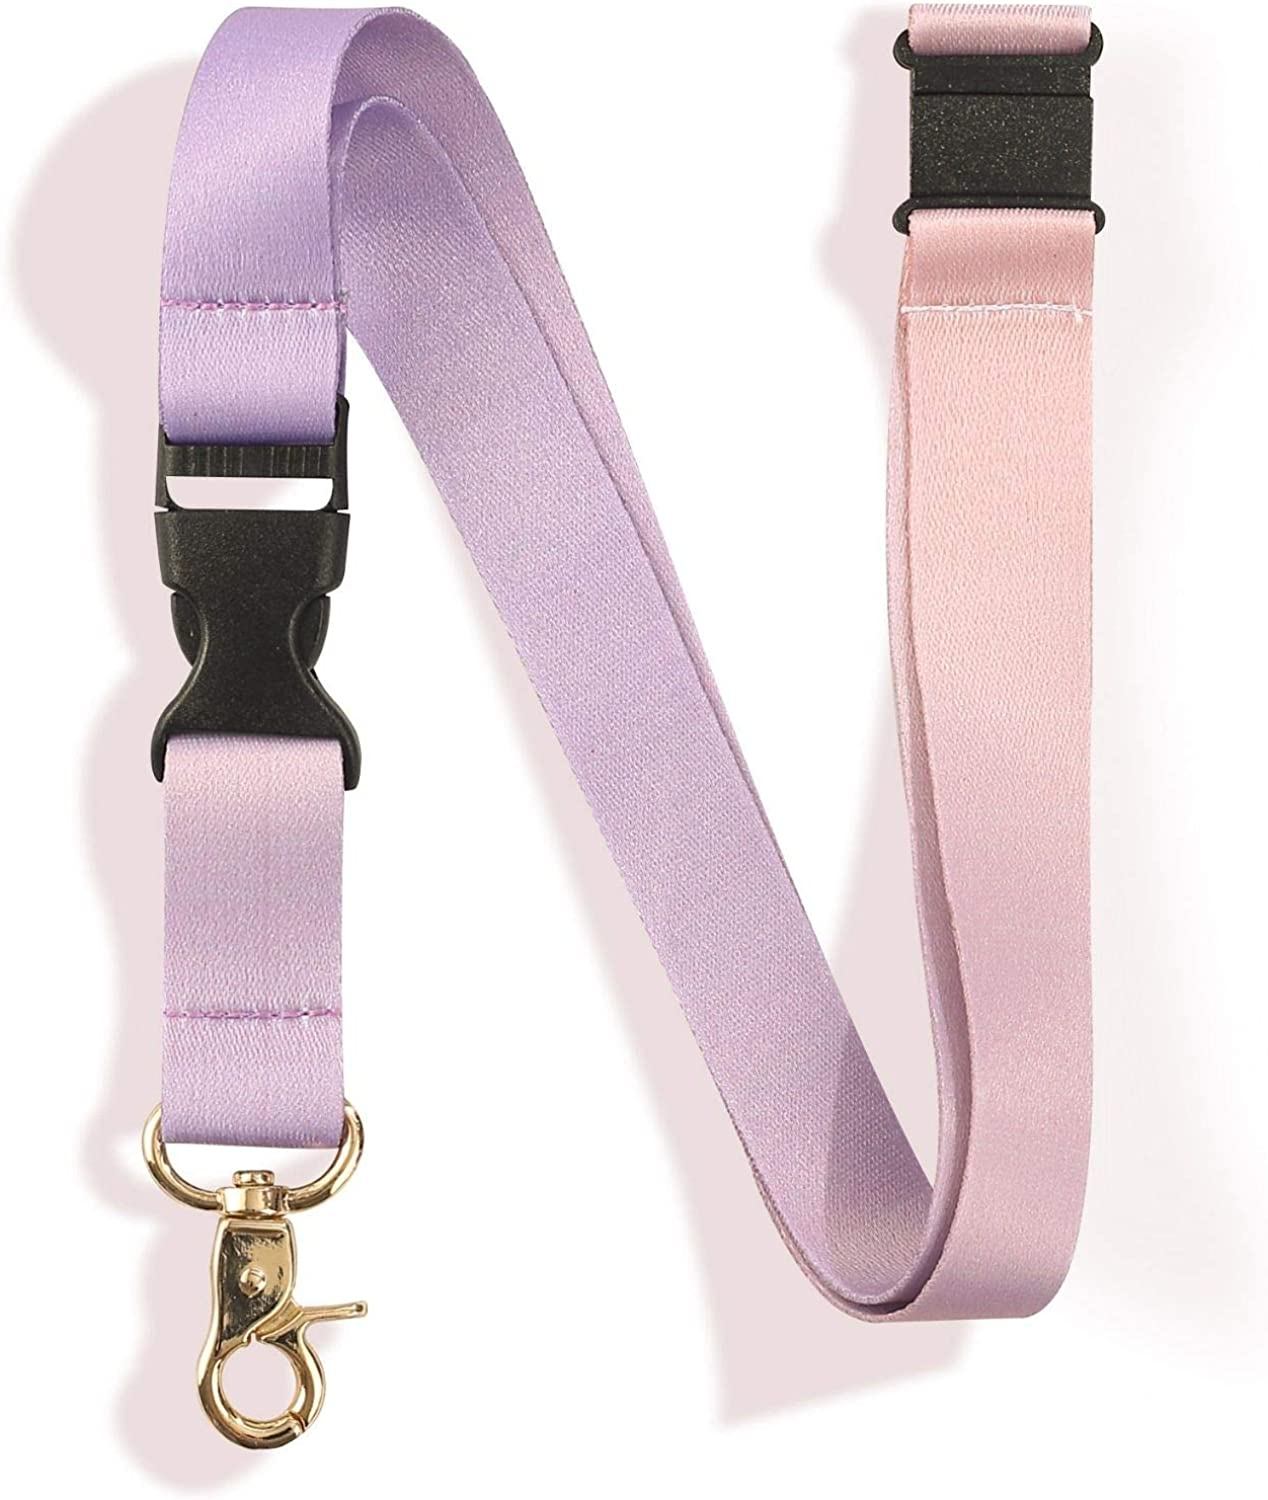 Lanyard Neck Strap Keychain Cute Detachable Lanyard with Quick Release Buckle